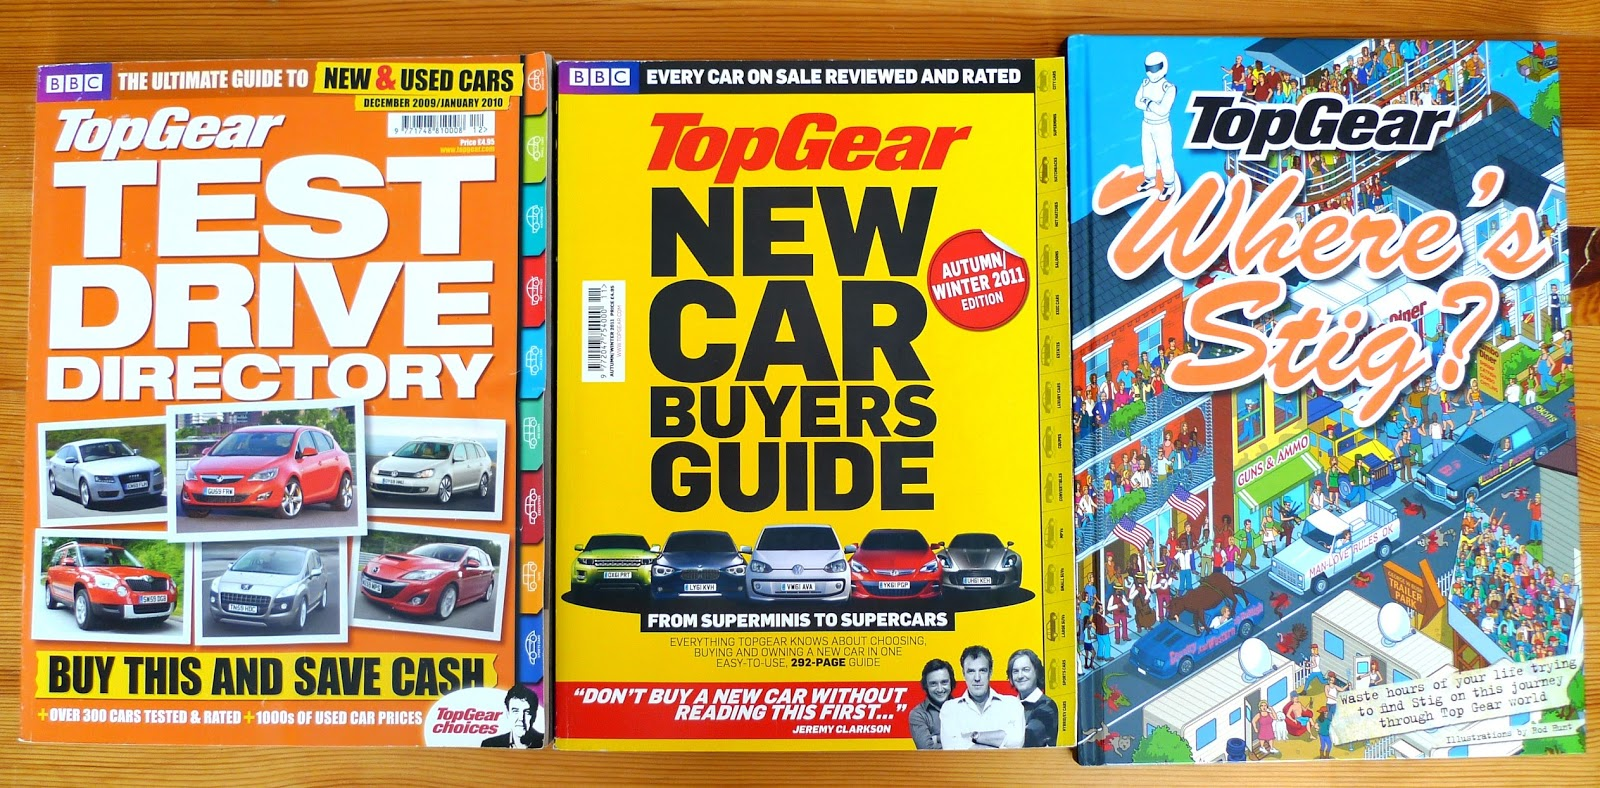 Lucy Melford: Farewell, Top Gear